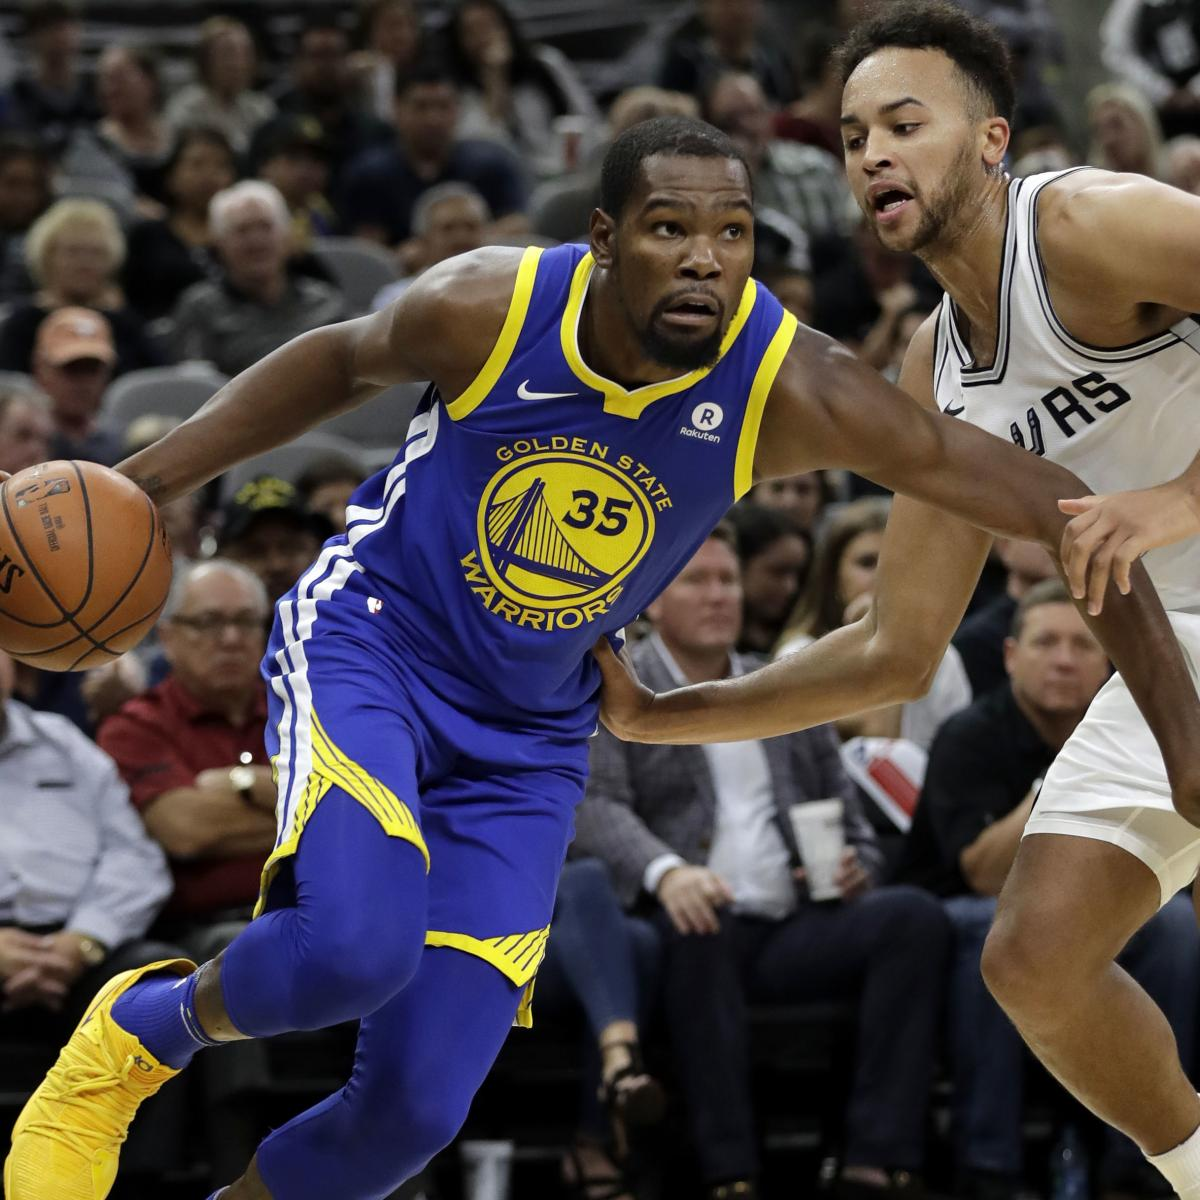 Even Without Stephen Curry, Golden State Warriors Have Talent Edge over Spurs